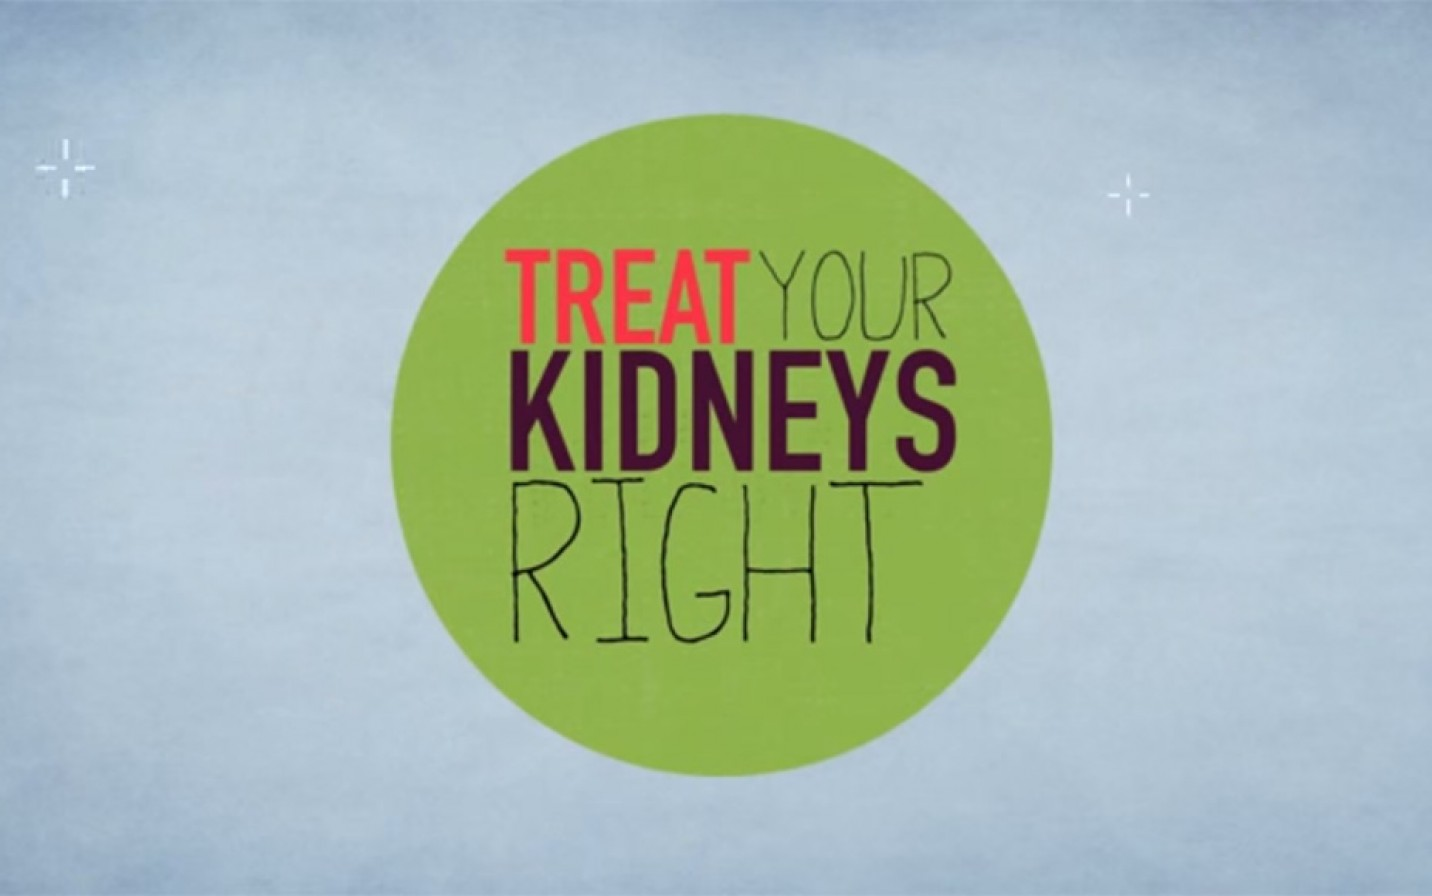 Treat your kids right - world kidney day